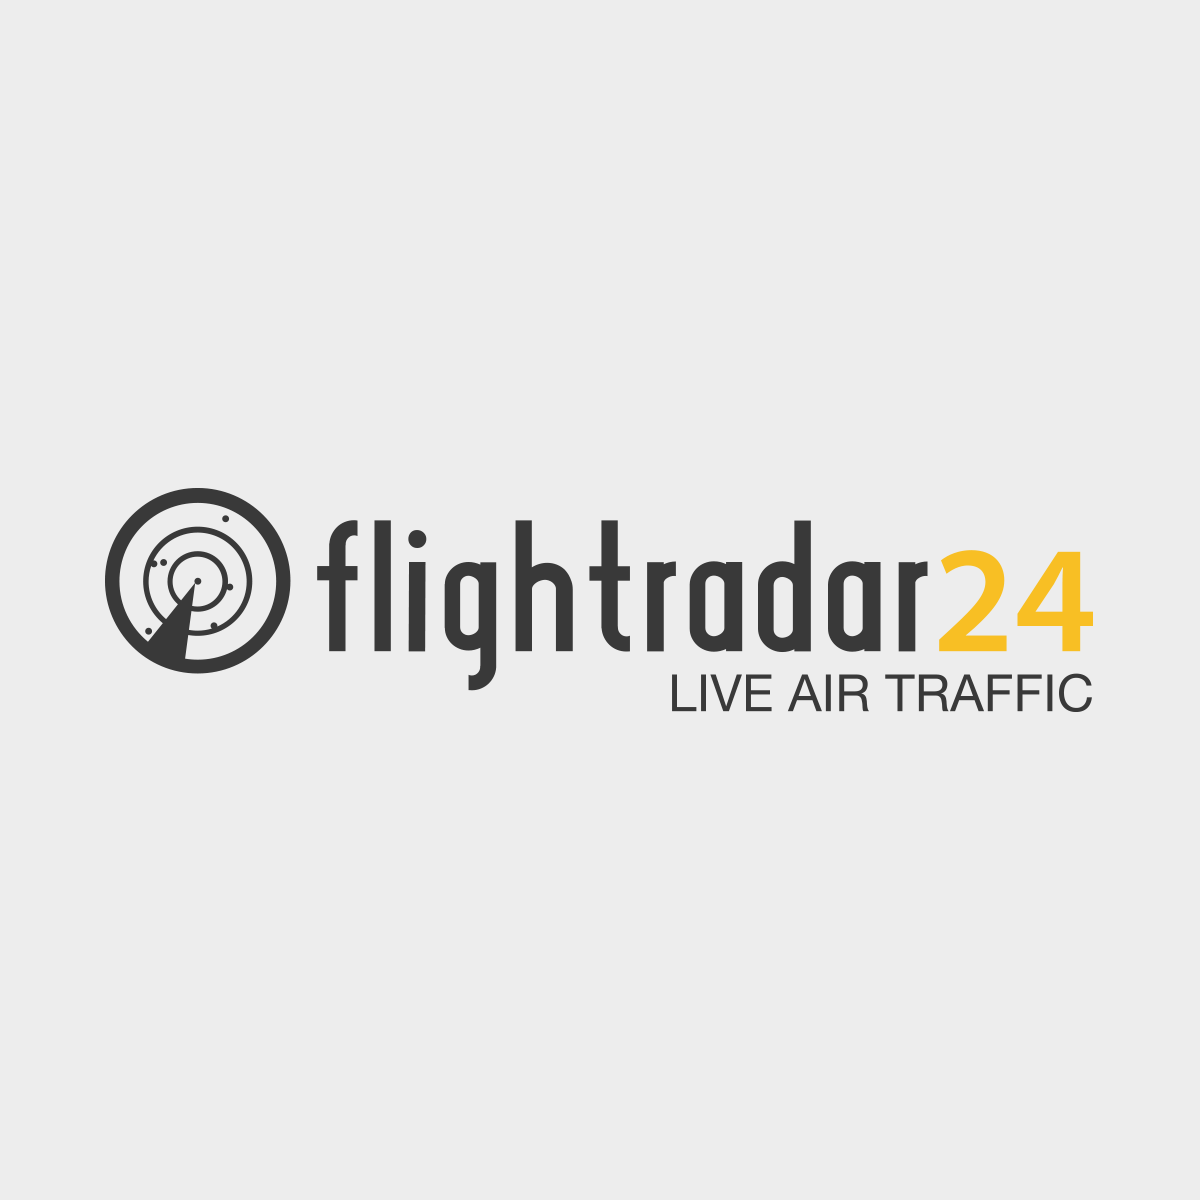 Search for an Airline - Flightradar24